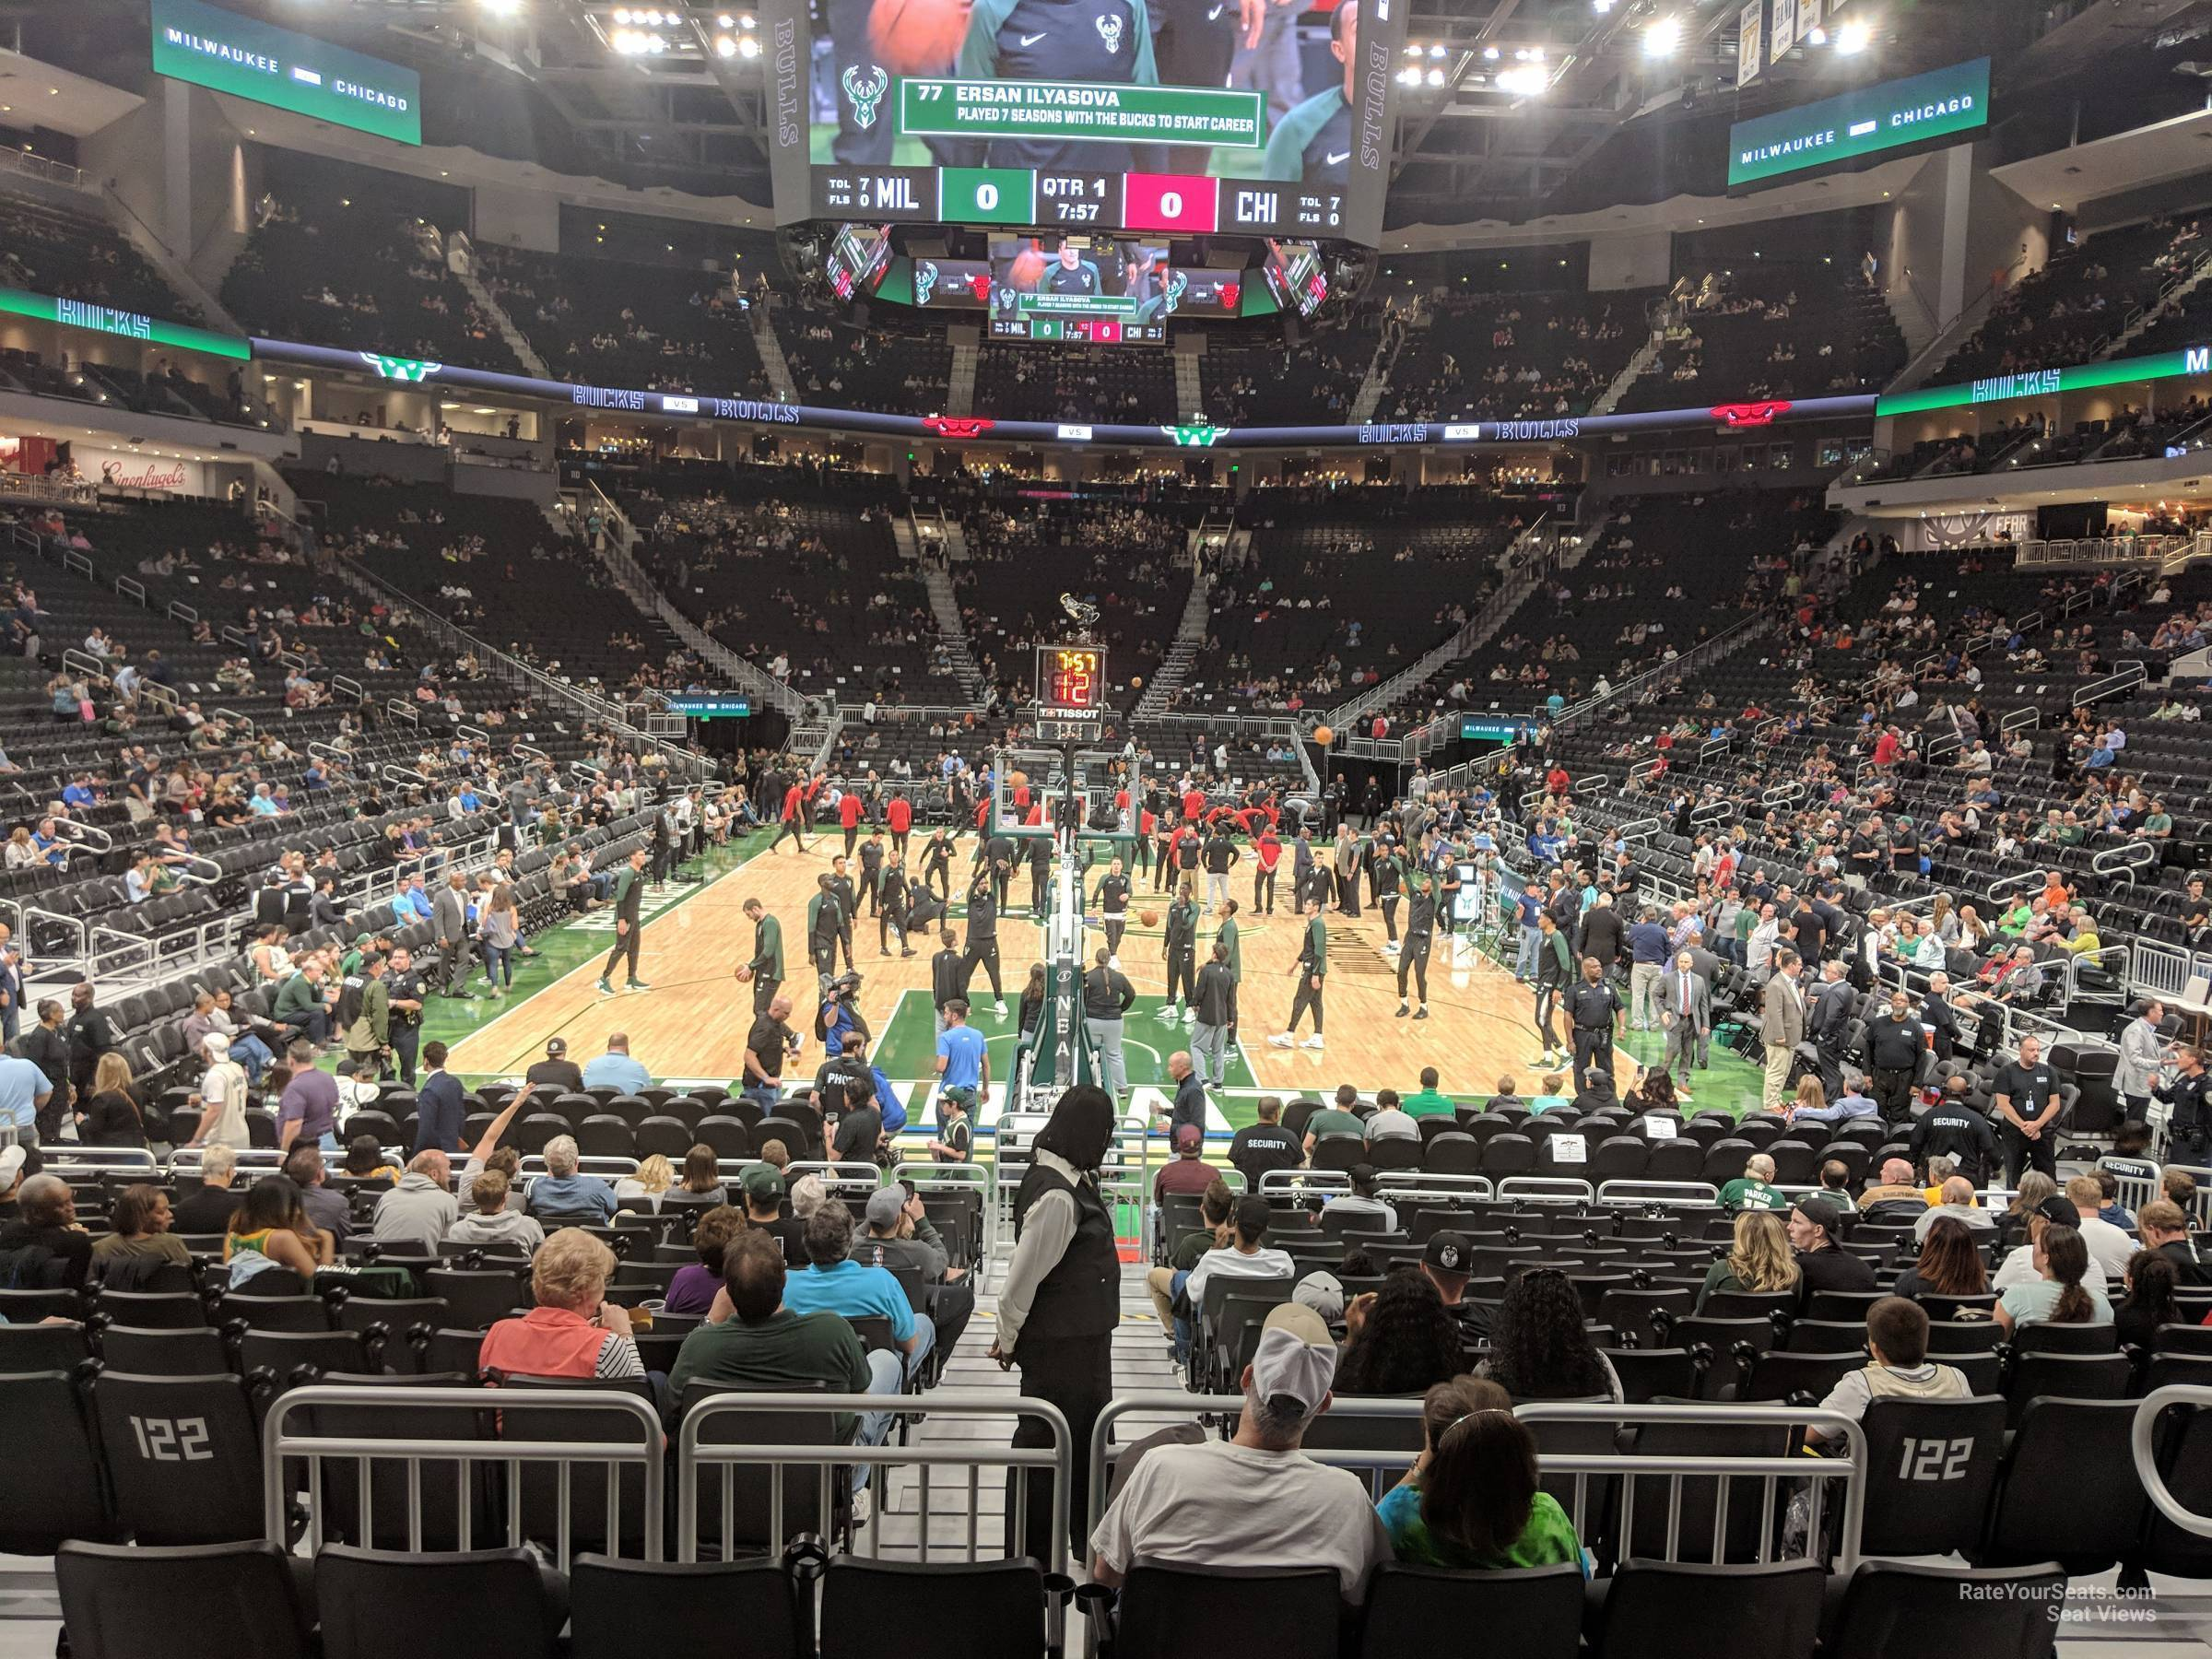 Section 101 seat view